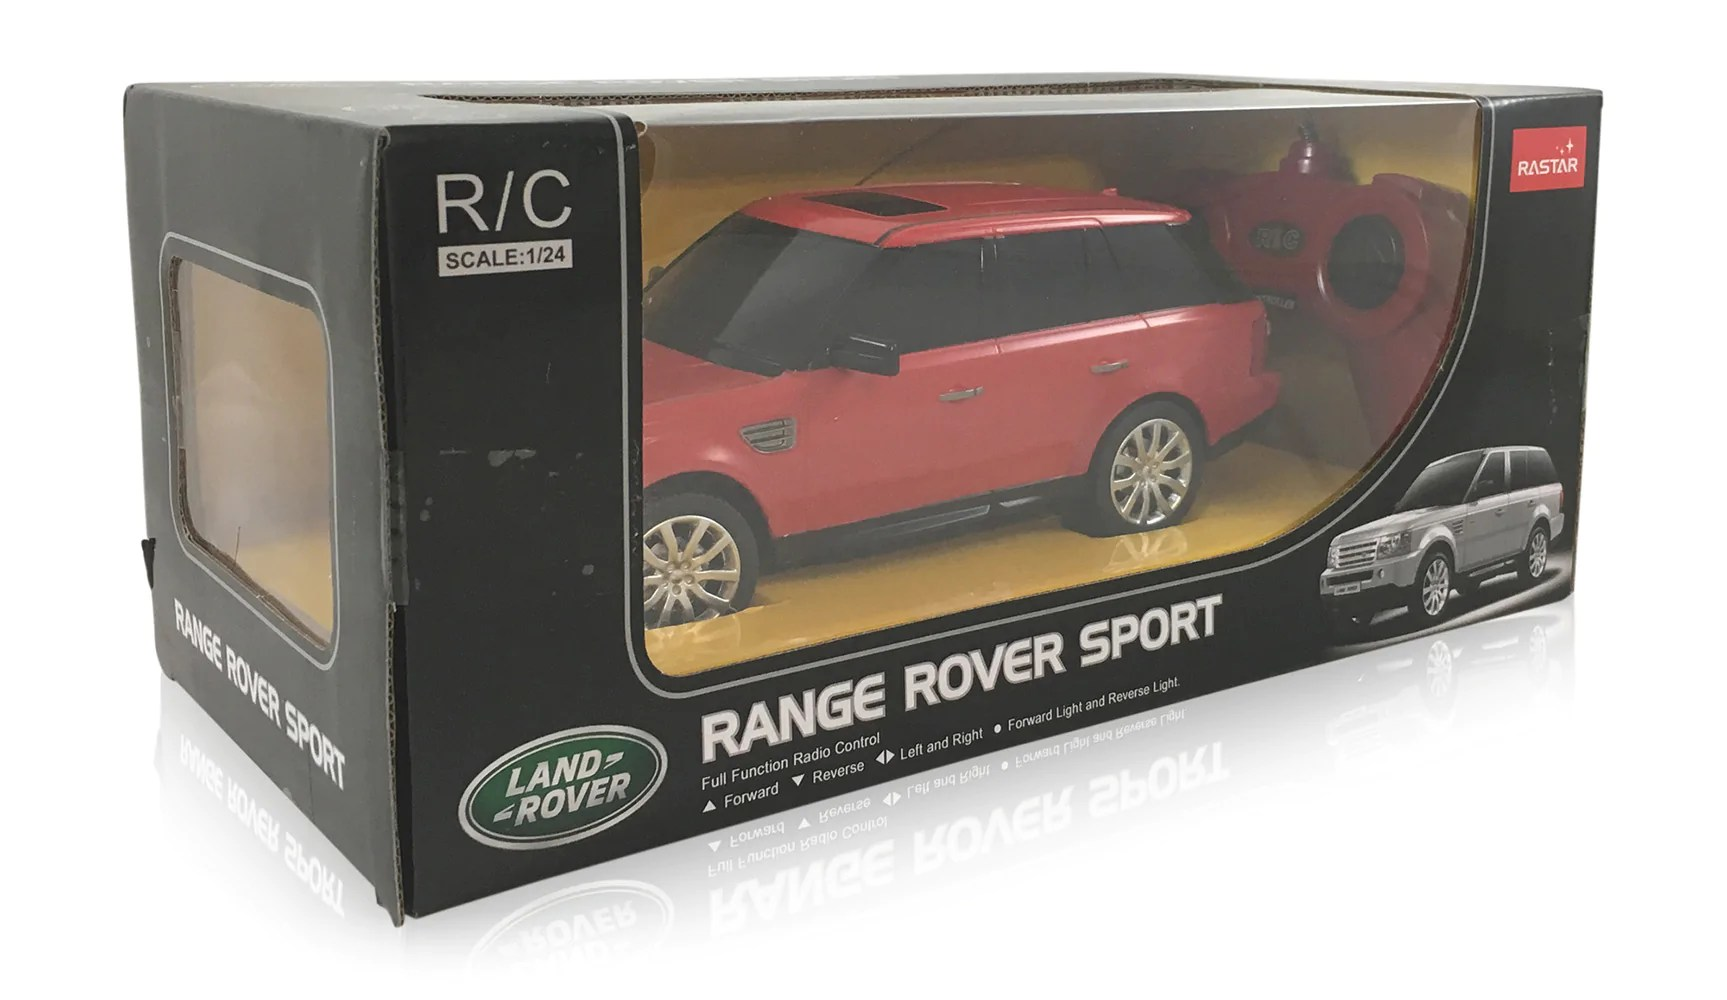 hight resolution of land rover range rover sport red 1 24 scale radio controlled model car by rastar